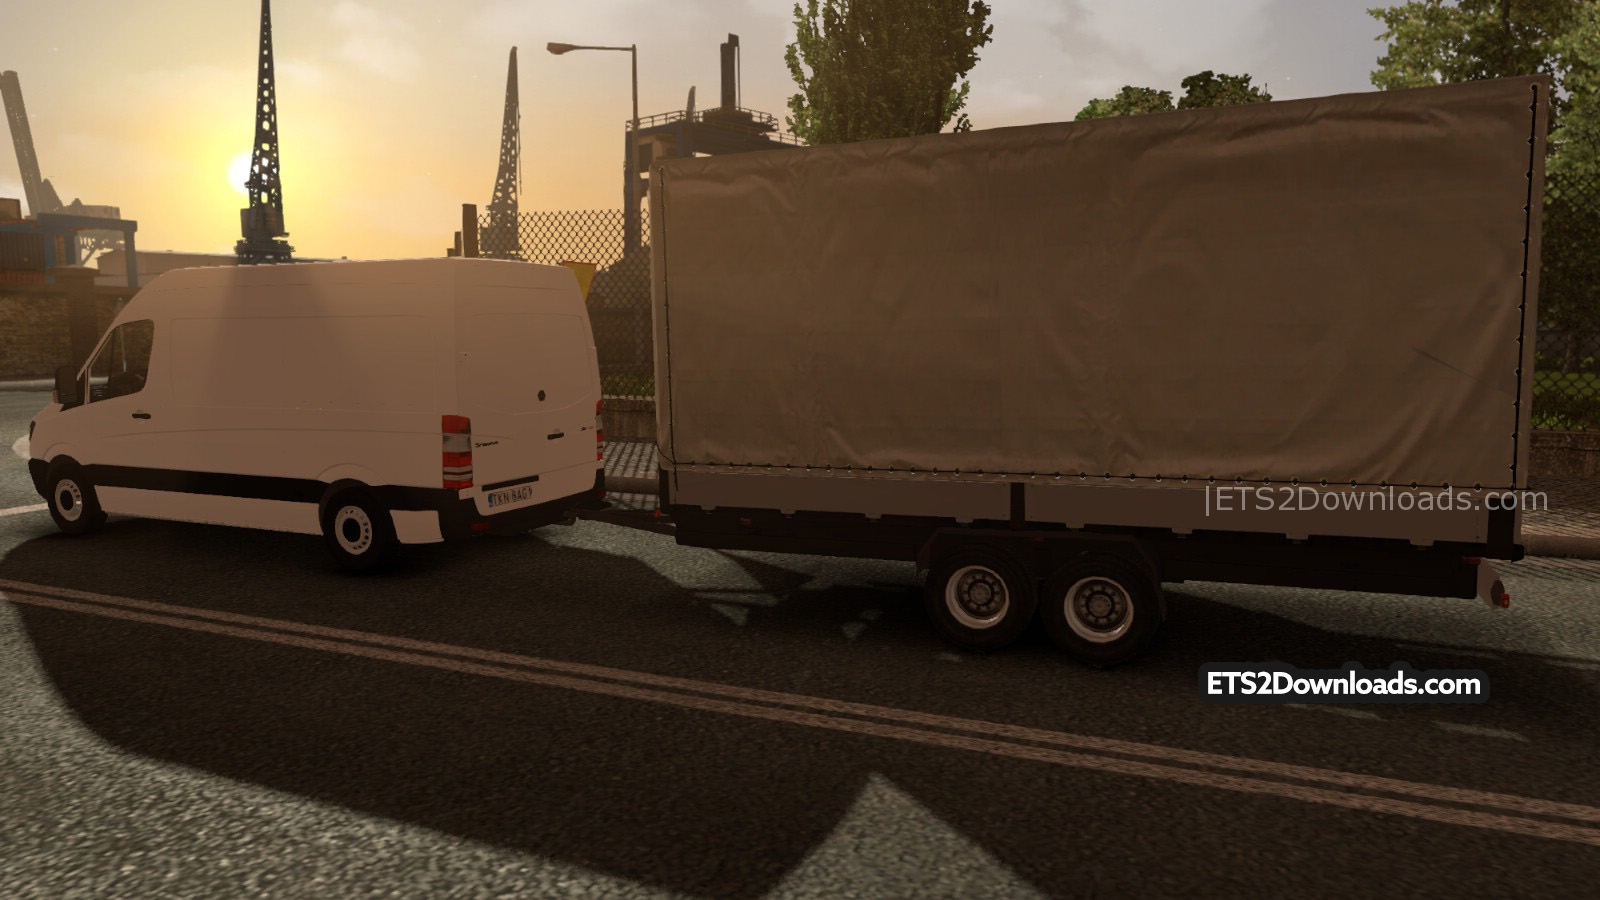 Mercedes-Benz Sprinter + Trailer - ETS2 Mods